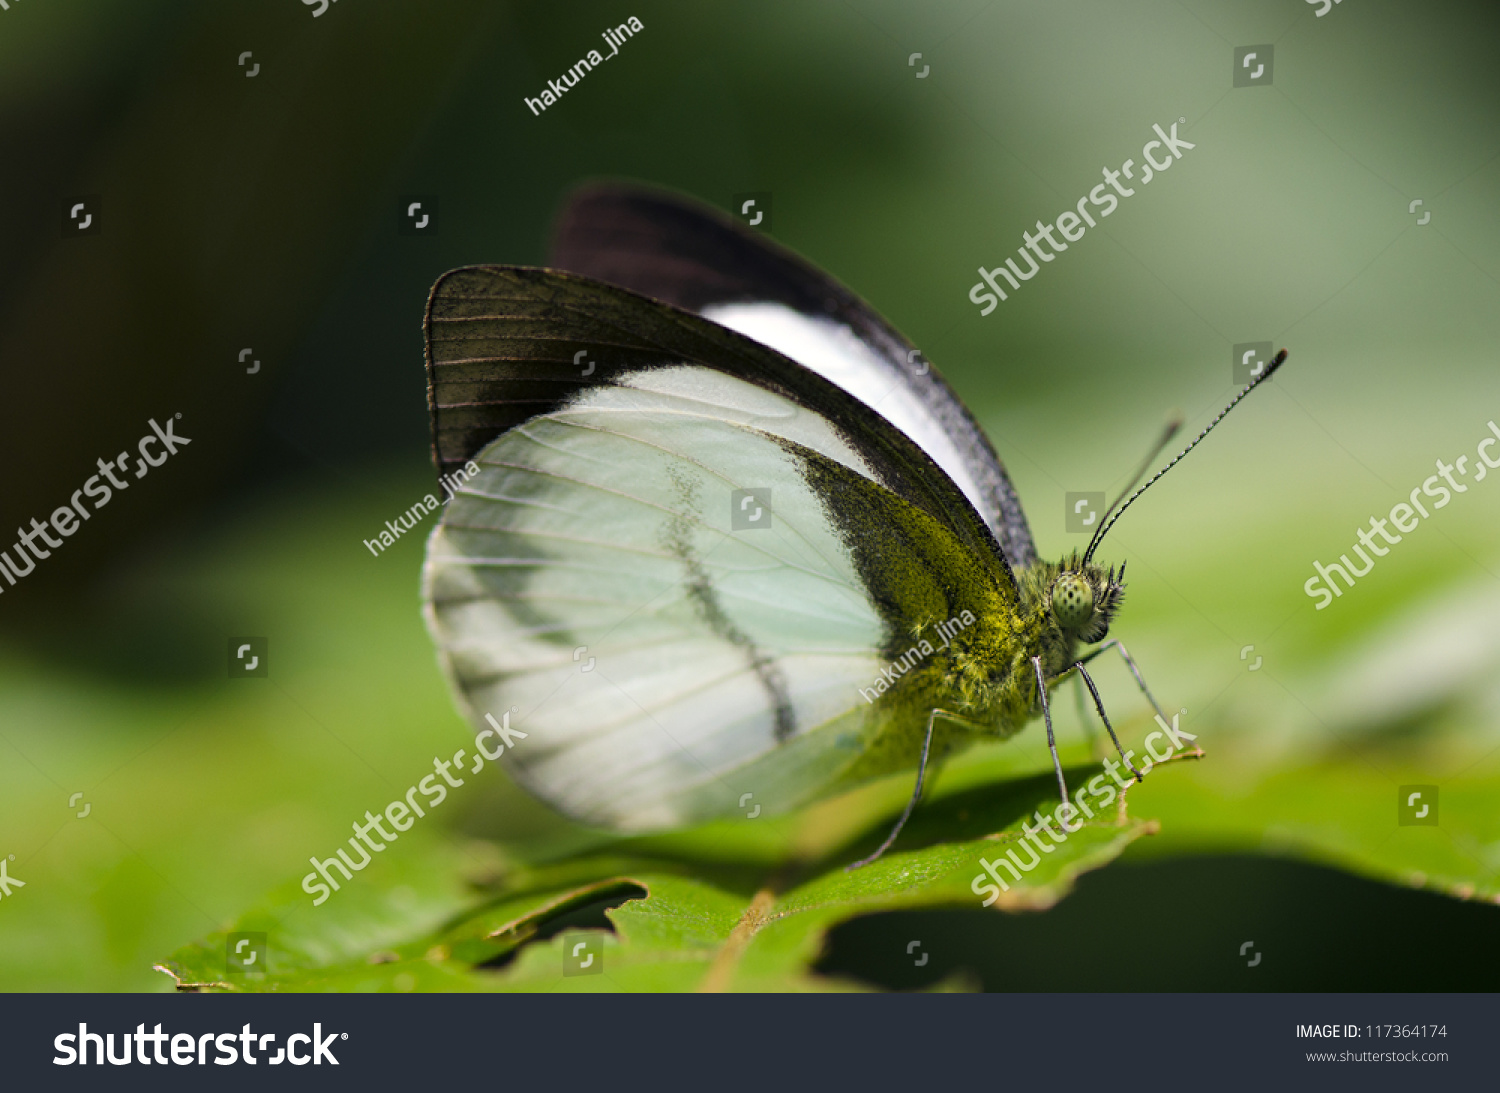 Sưu tập Bộ cánh vảy 3 - Page 3 Stock-photo-phrissura-aegis-cynis-the-forest-white-117364174